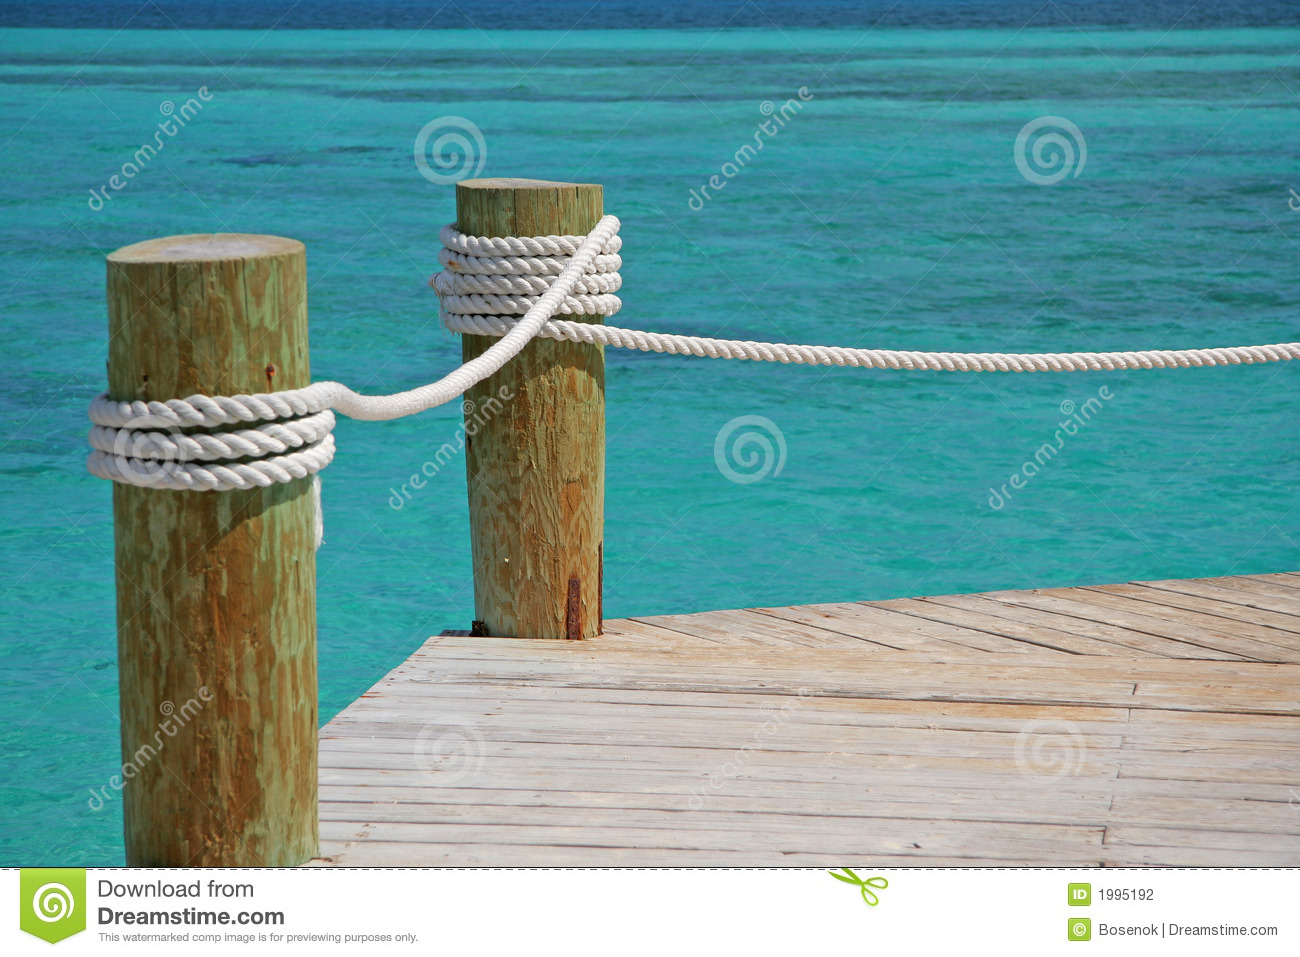 Tropical pier stock photo. Image of tropical, boat, water ...